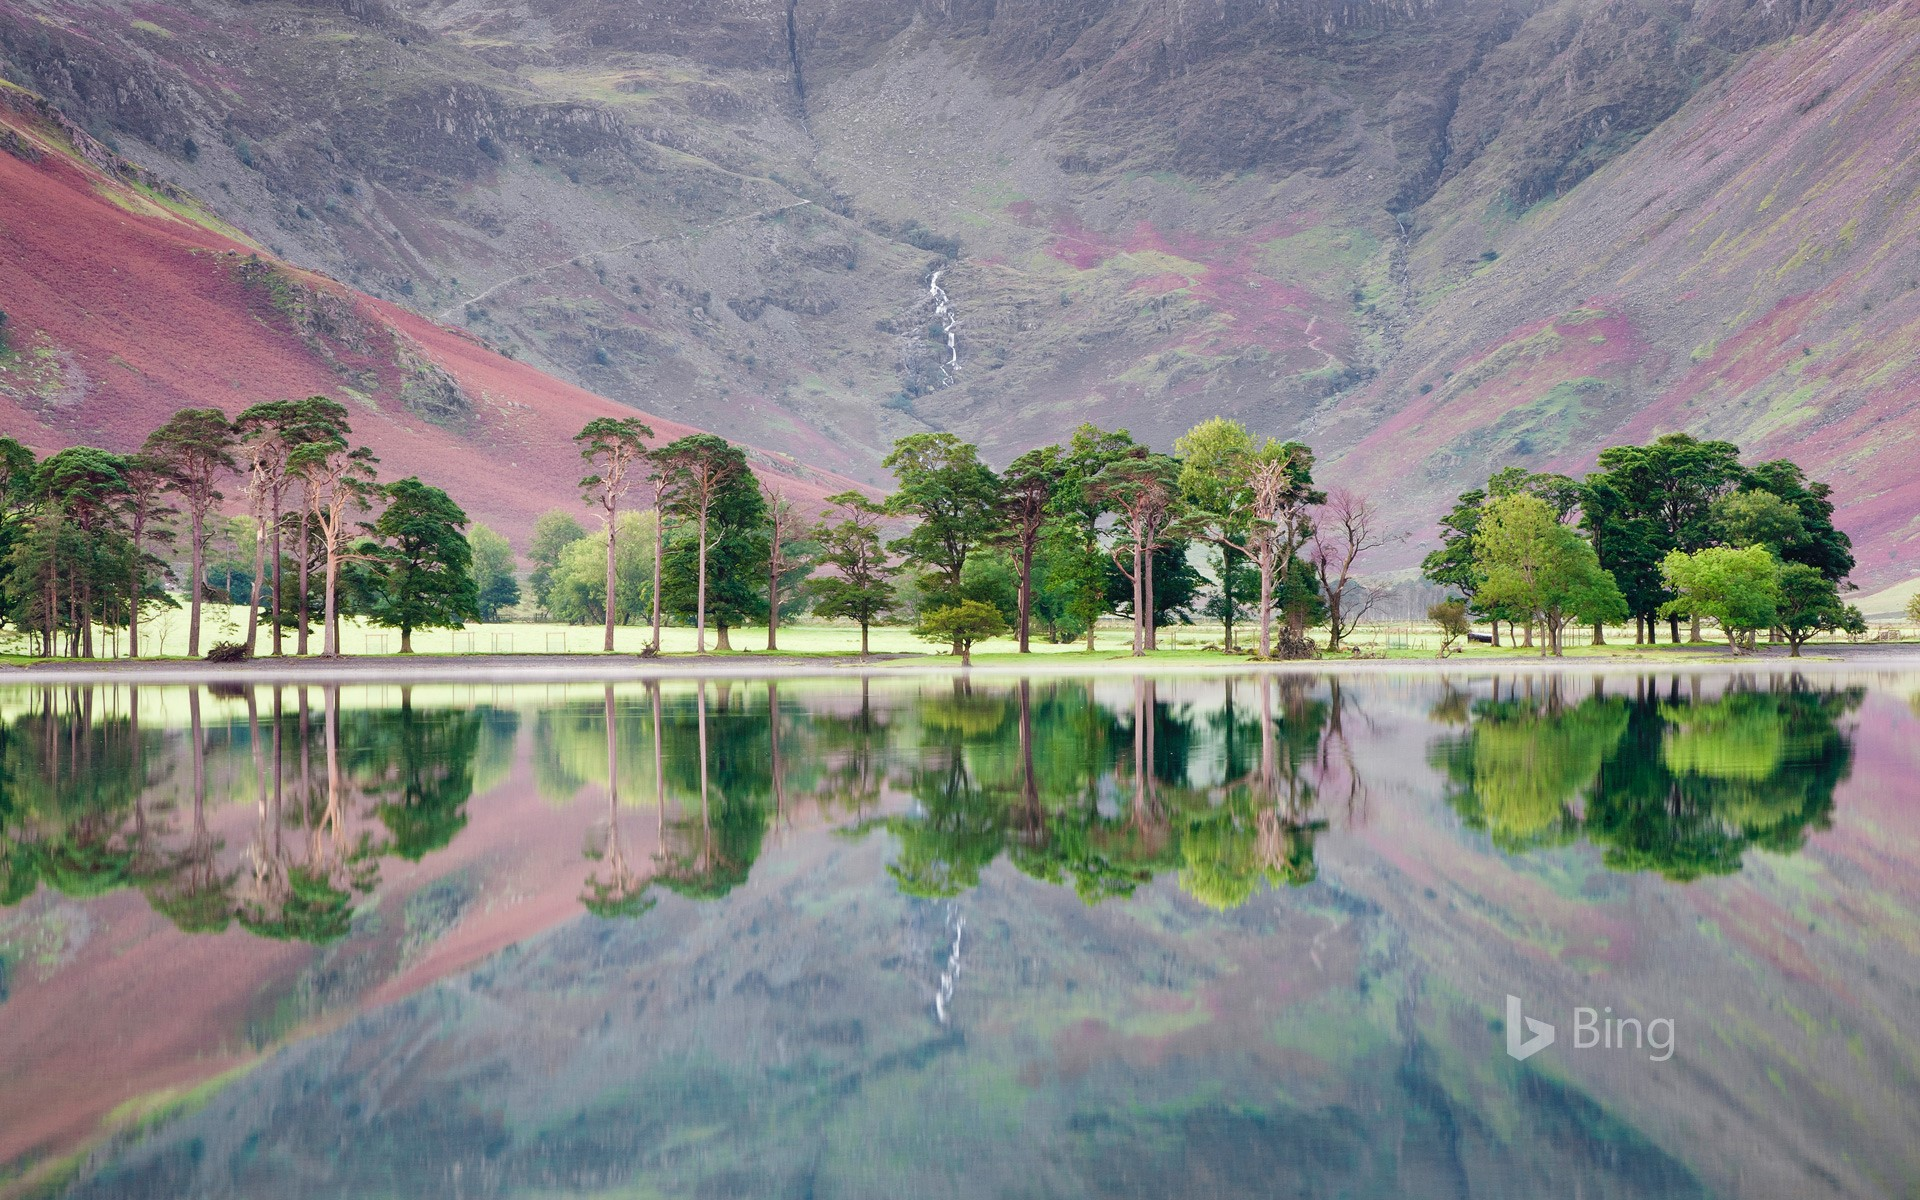 Buttermere in the Lake District, North West England